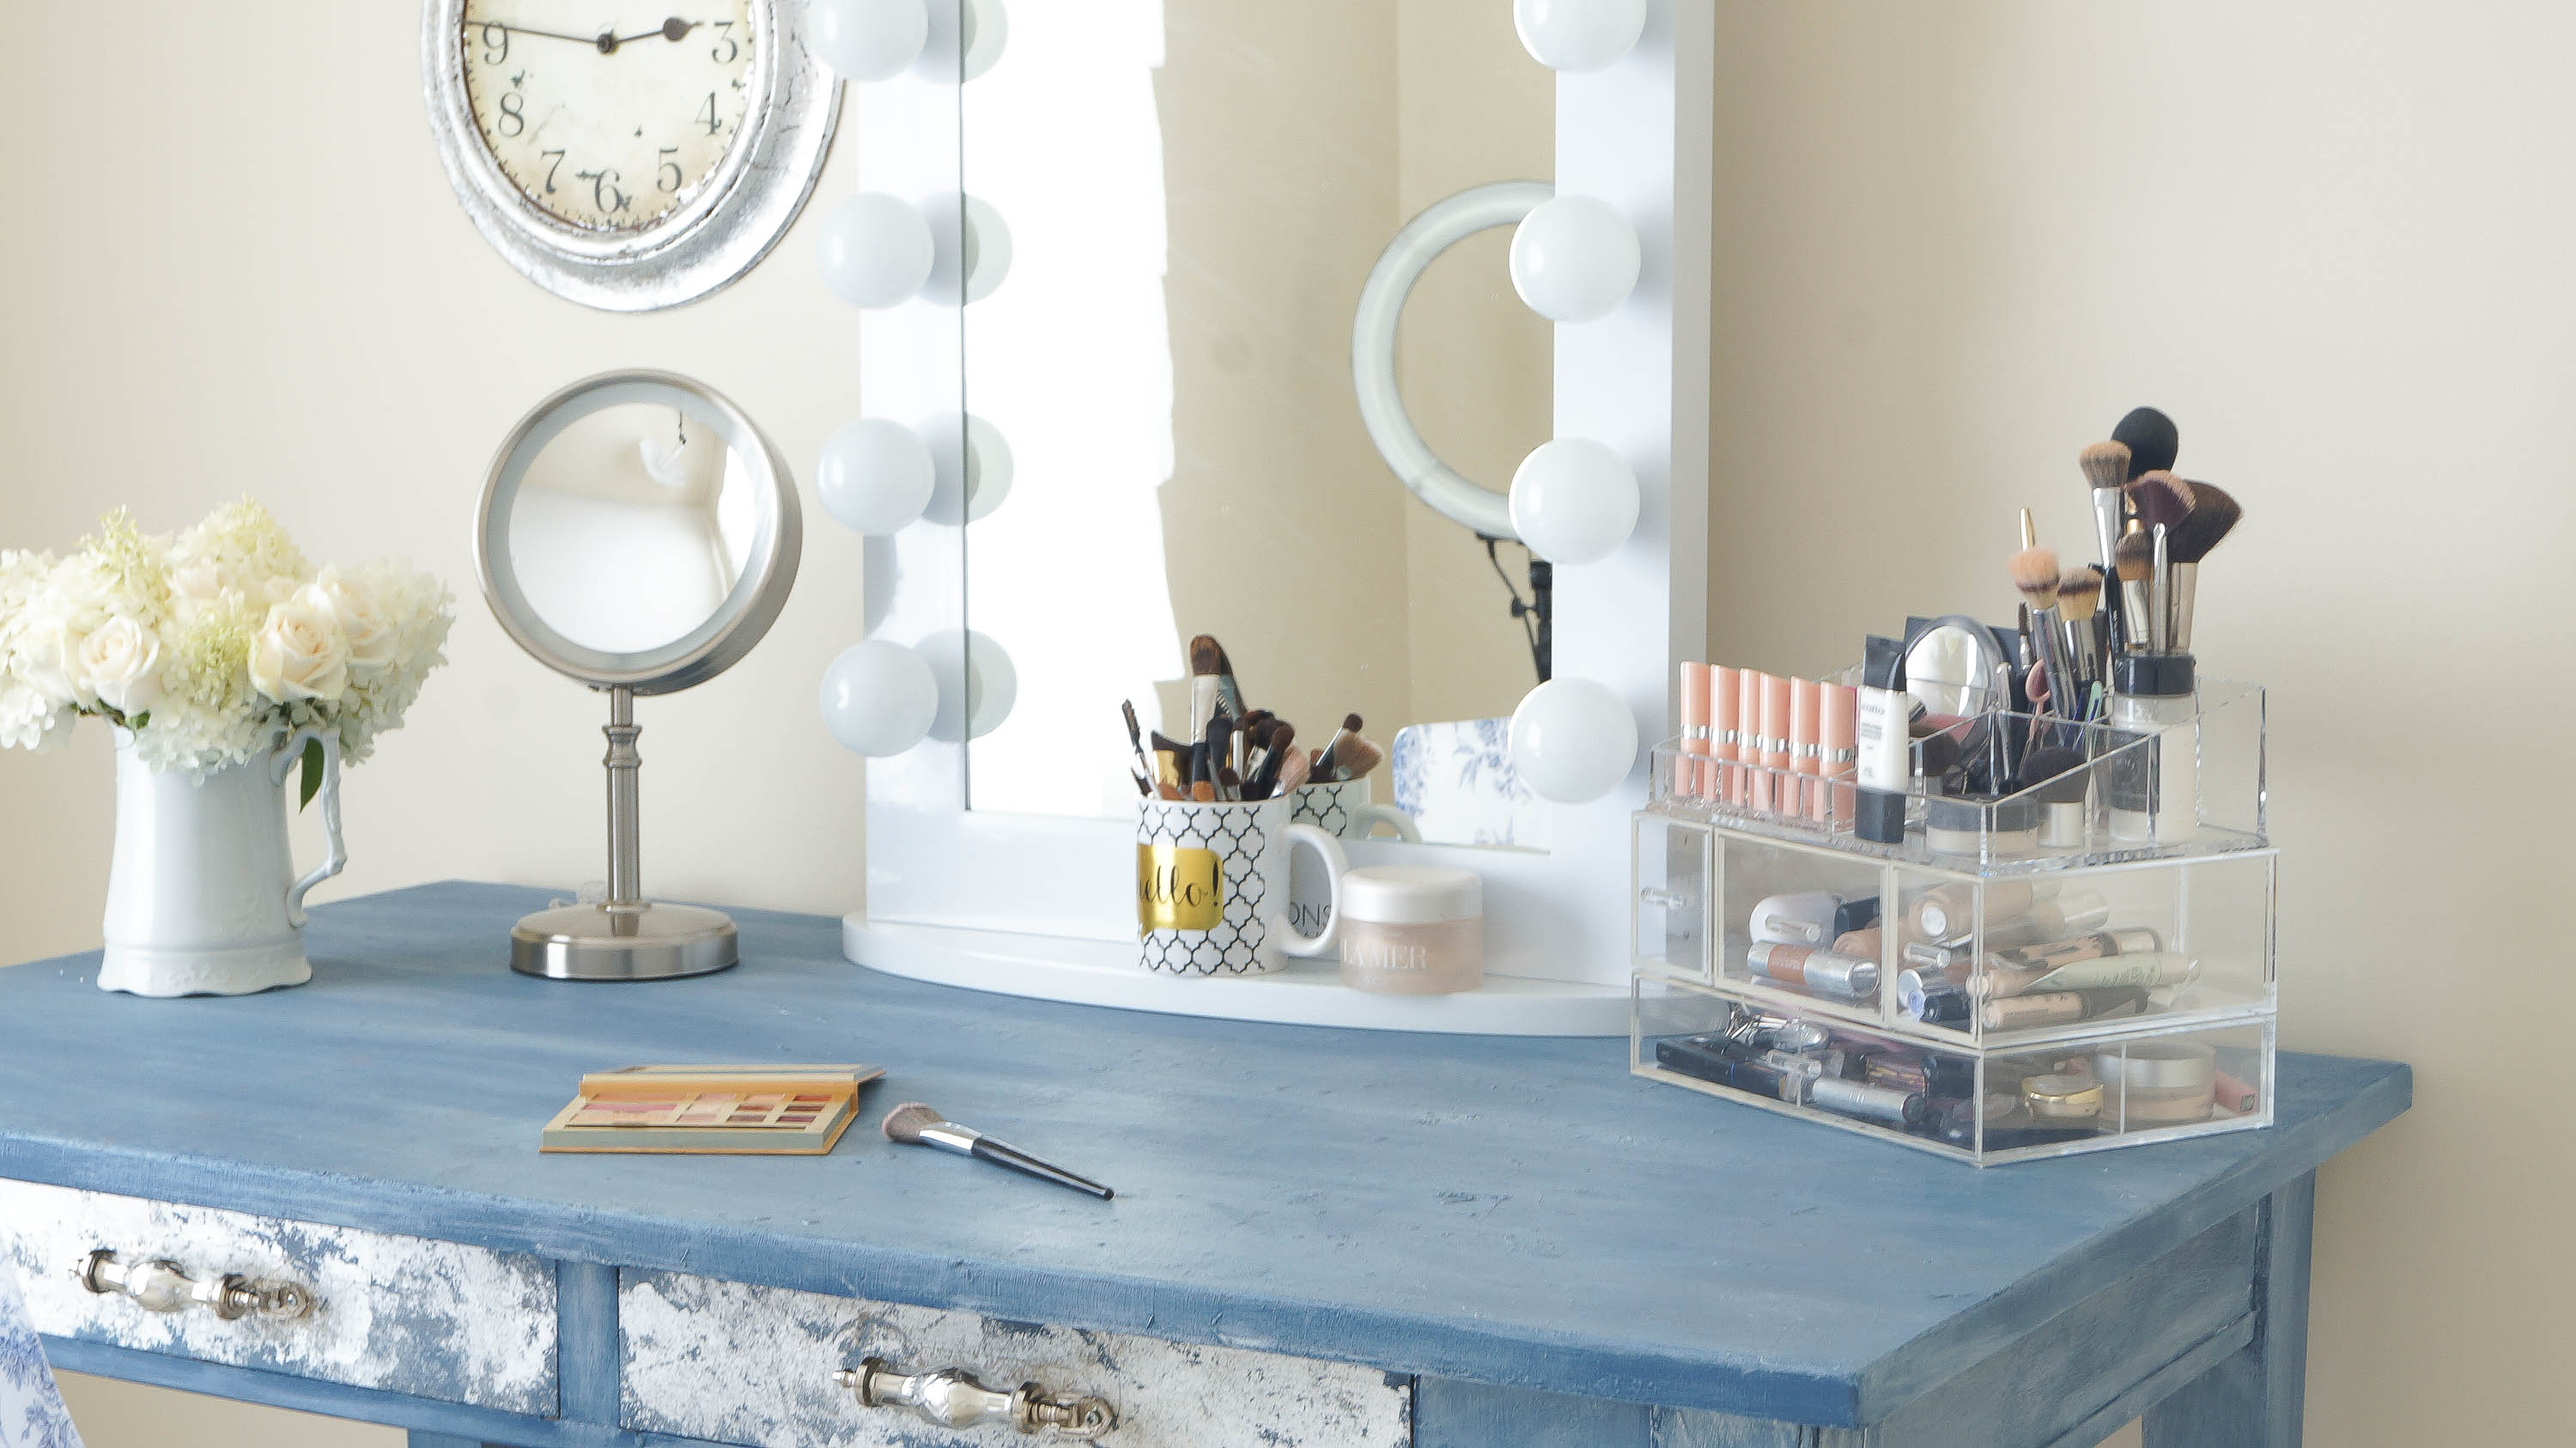 Makeup Mirror In My New Girly Room - White Lace Cottage on Makeup Room Ideas  id=93179